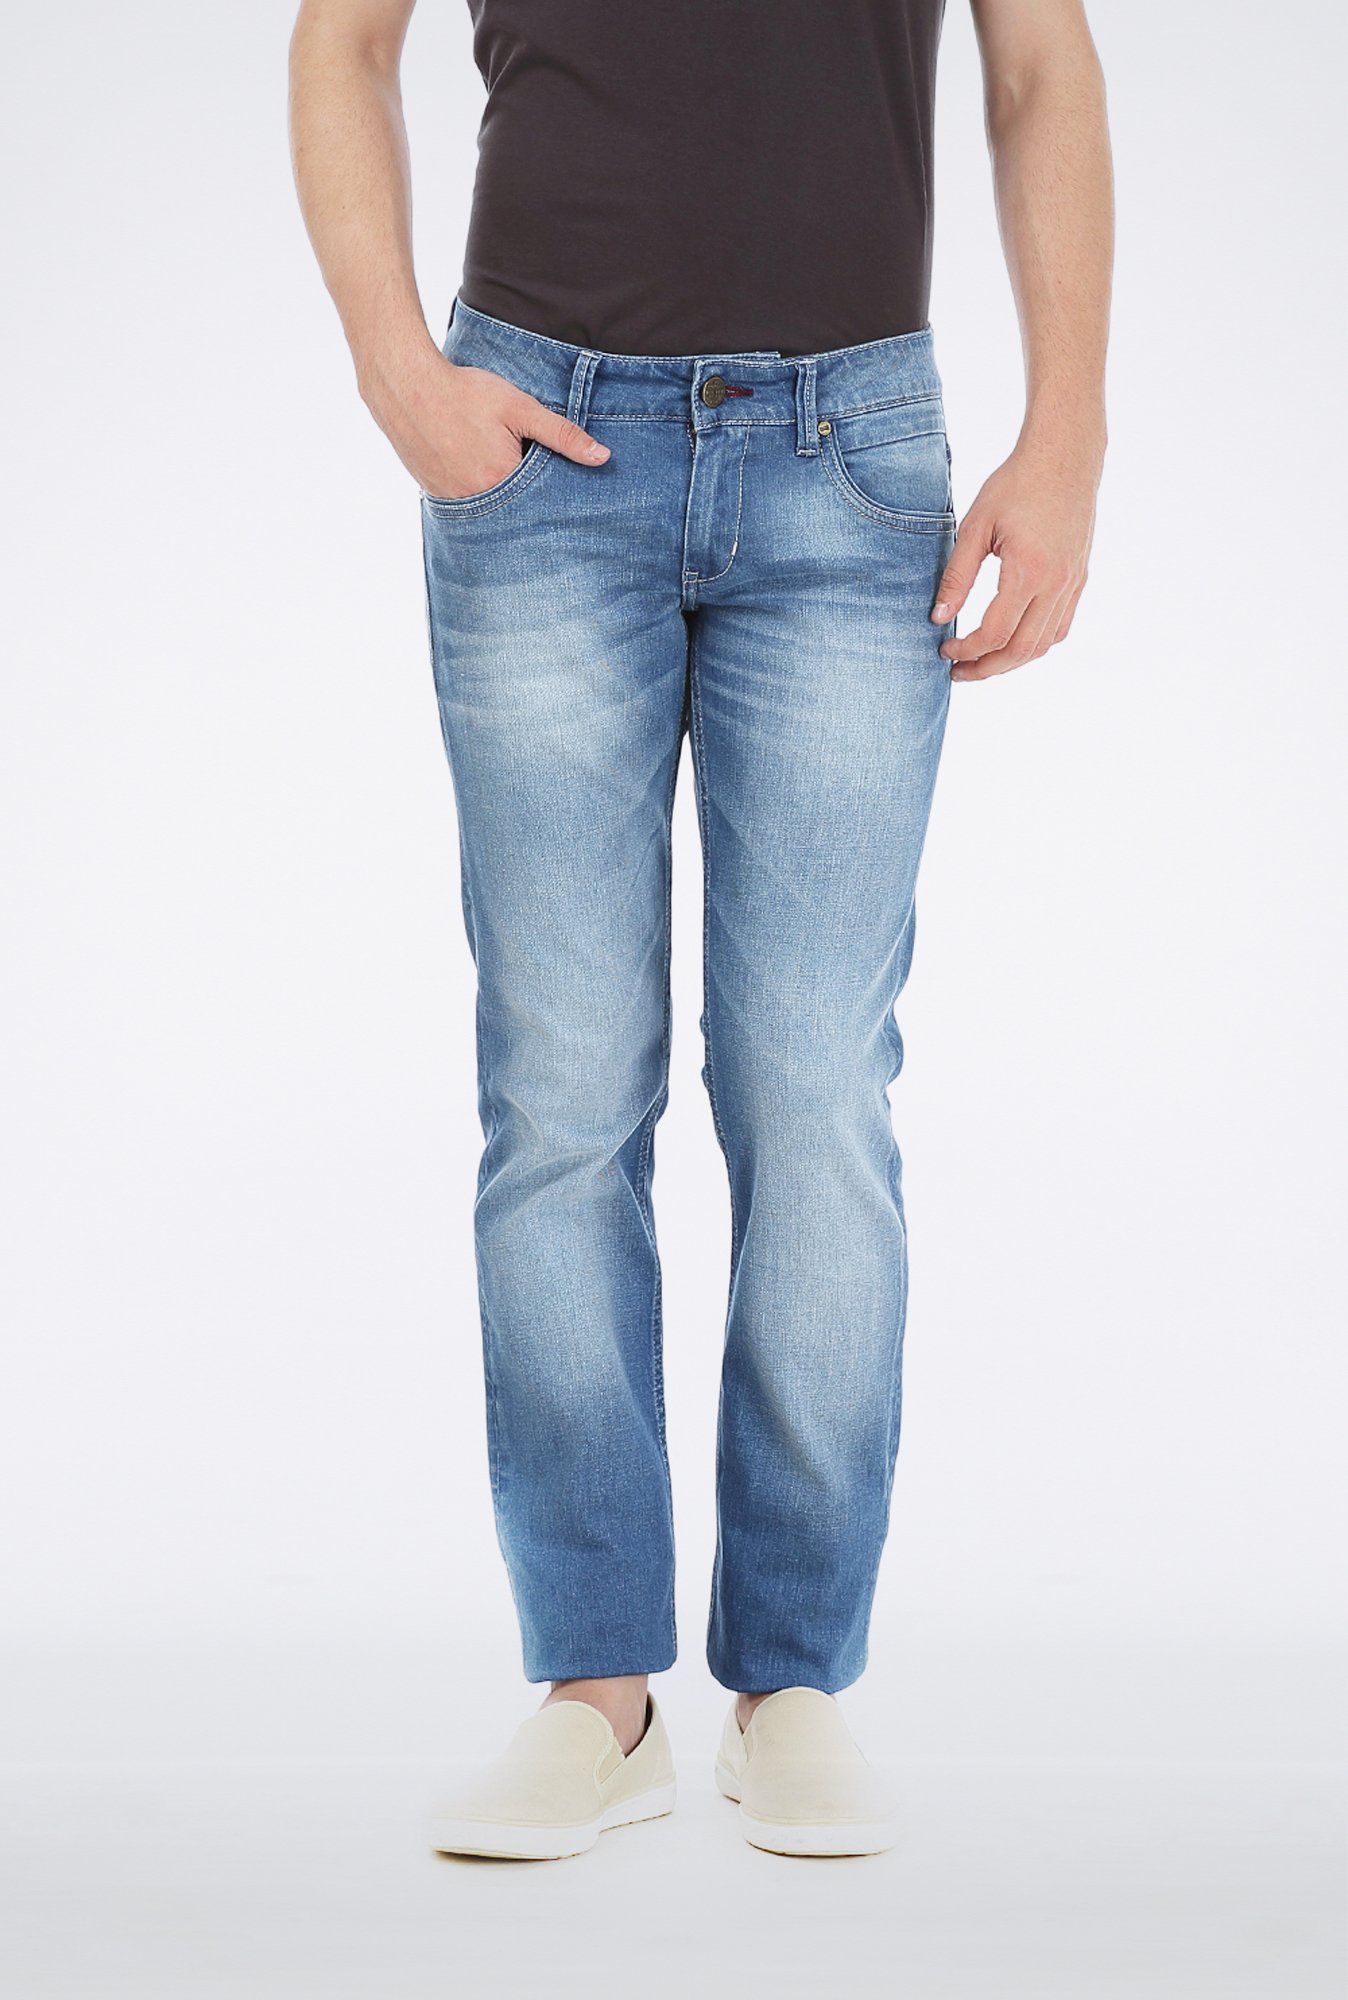 Basics Blue Slim Fit Jeans